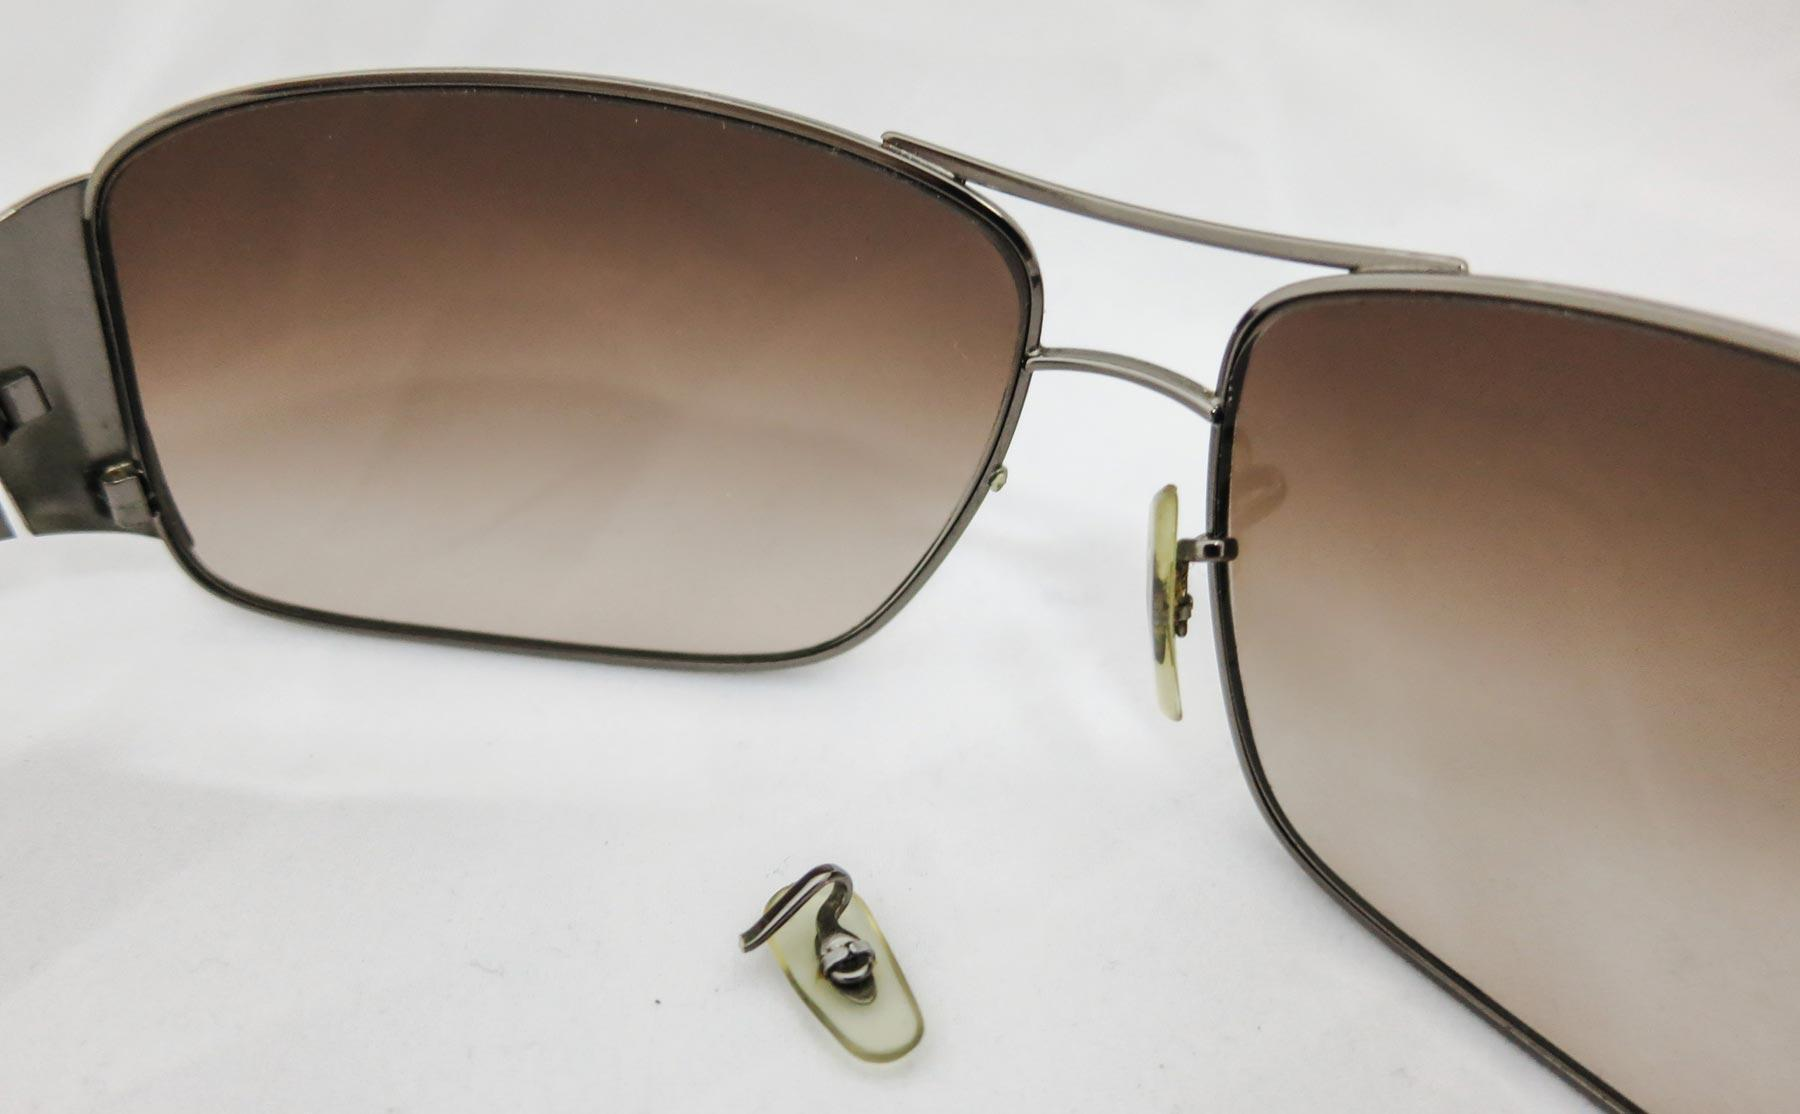 c725f13559 Broken Rayban arm pad - The most frequent repairs